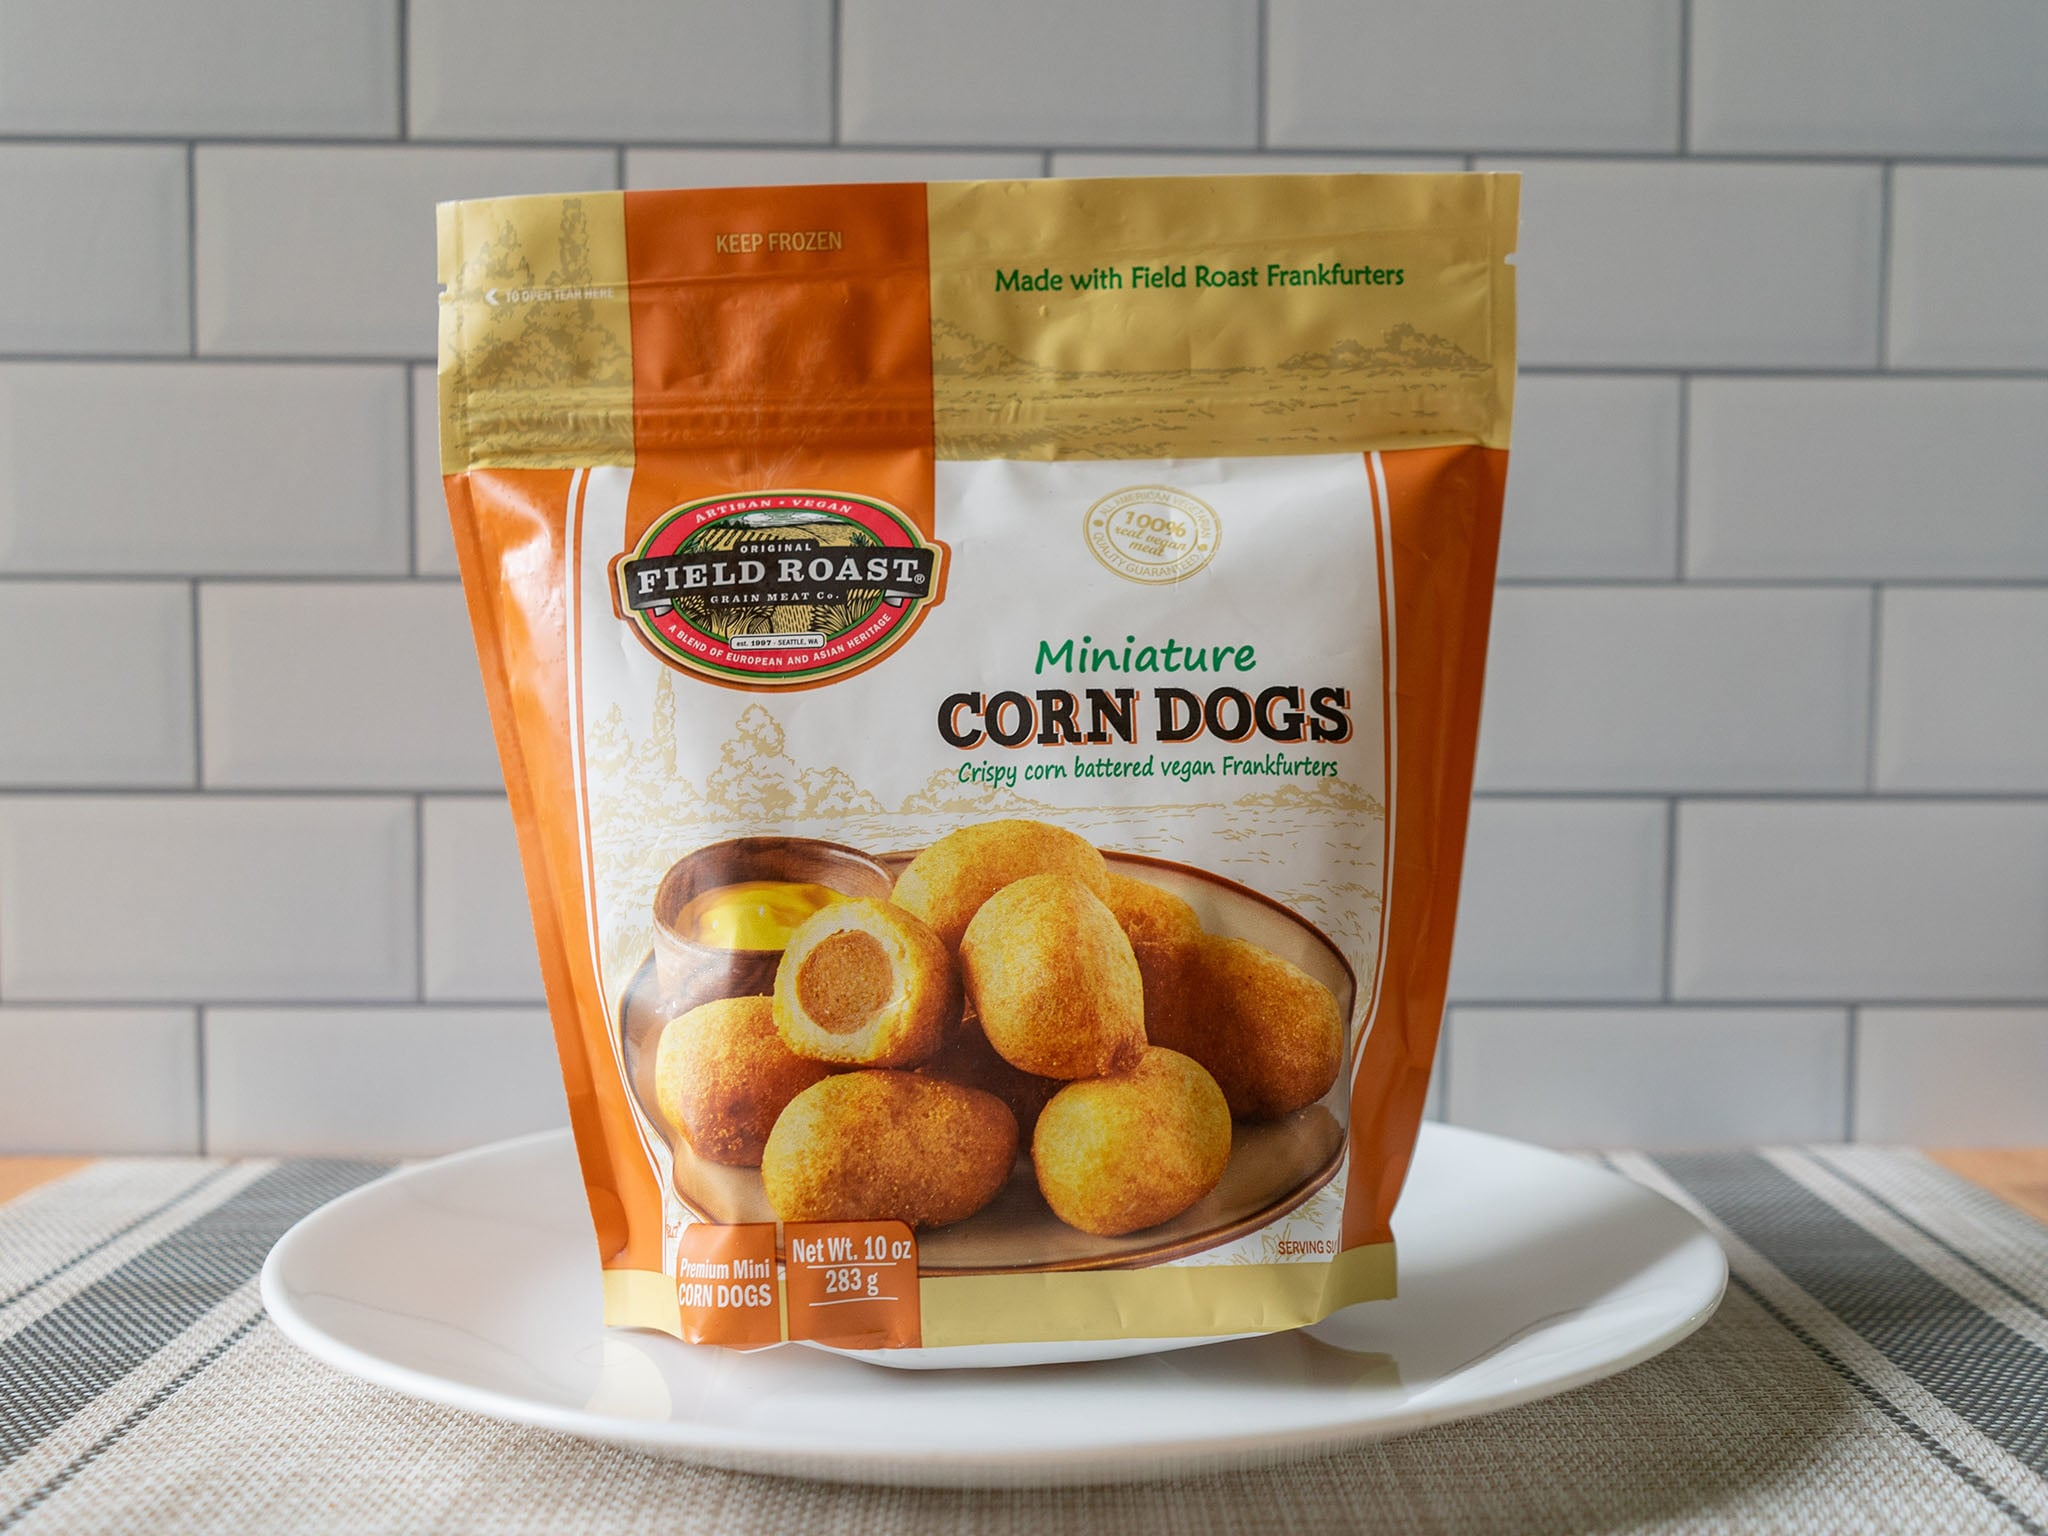 Field Roast Miniature Corn Dogs